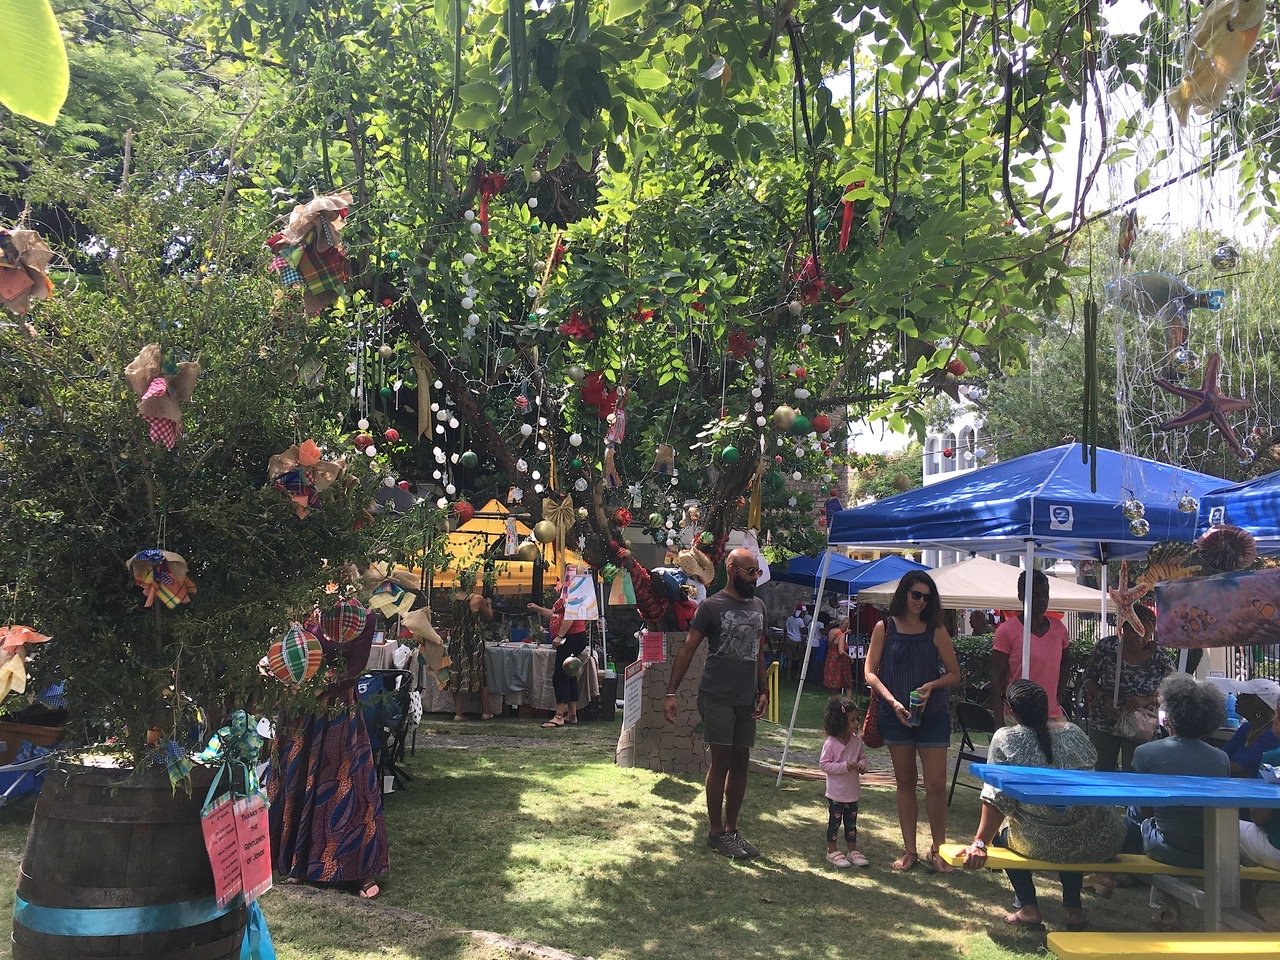 Families roamed among the decorated trees at Limpricht Park Saturday. (Source photo by Susan Ellis)